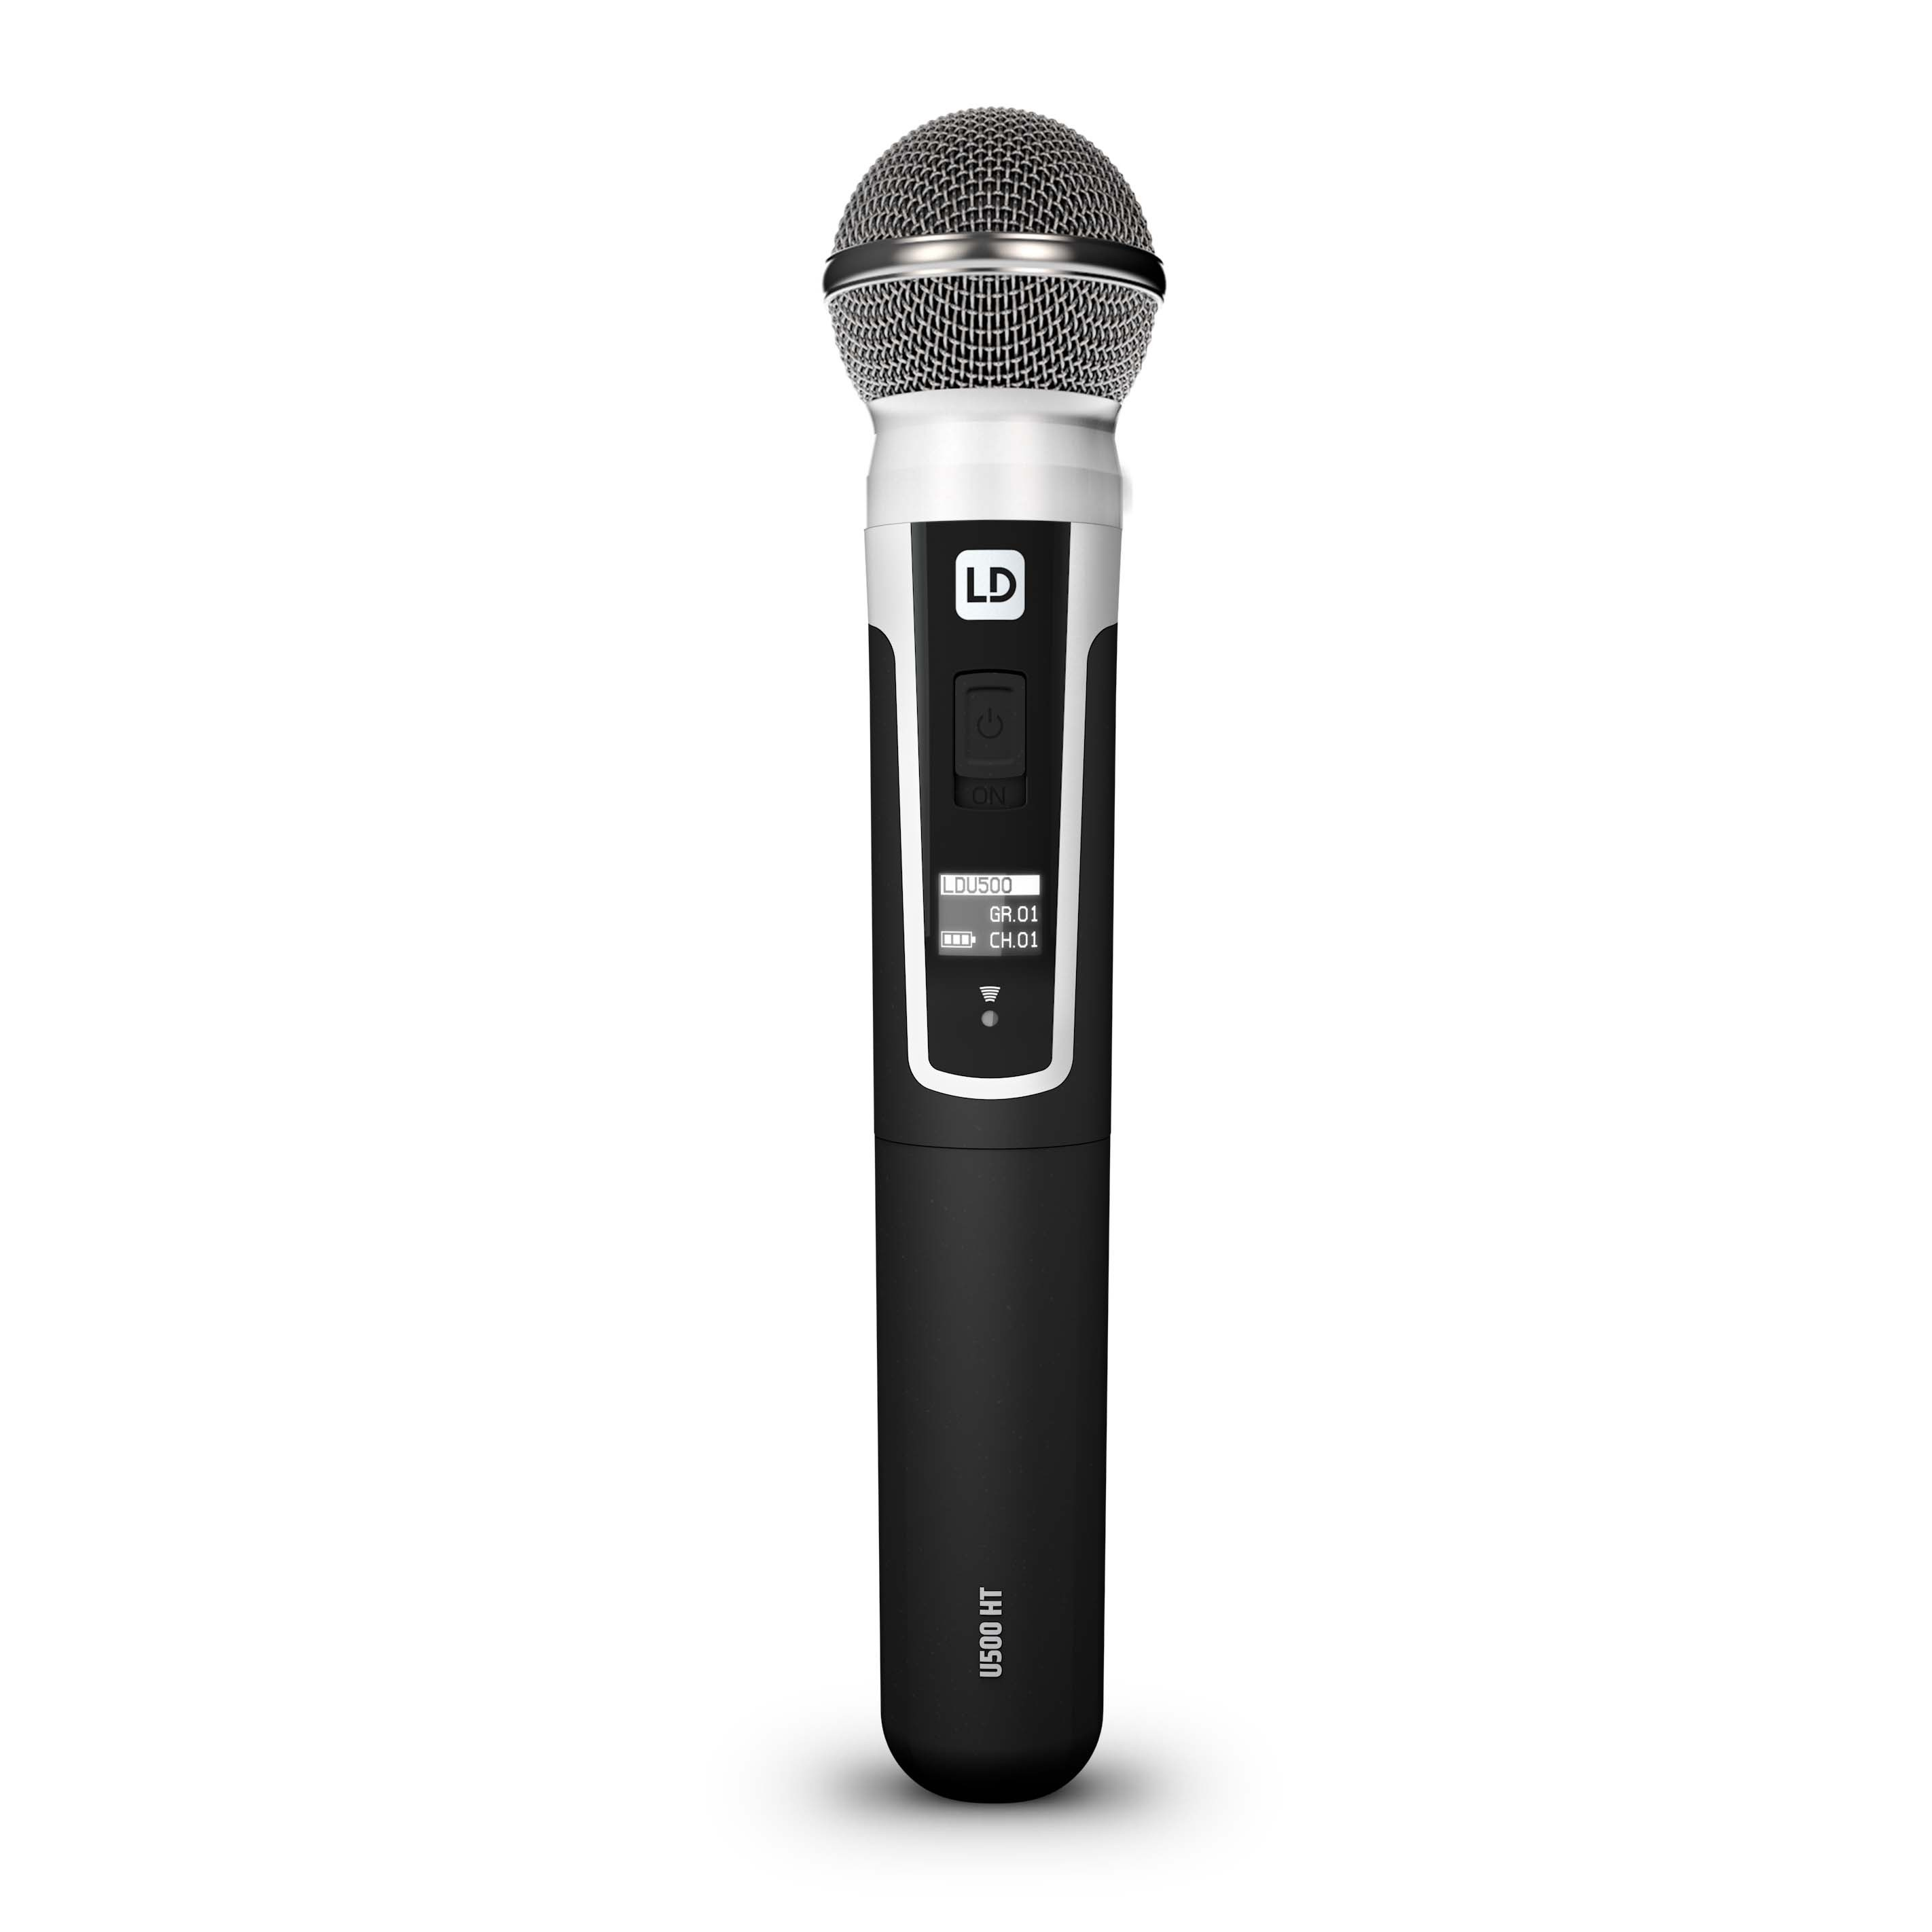 U508 HHD 2 Wireless Microphone System with 2 x Dynamic Handheld Microphone